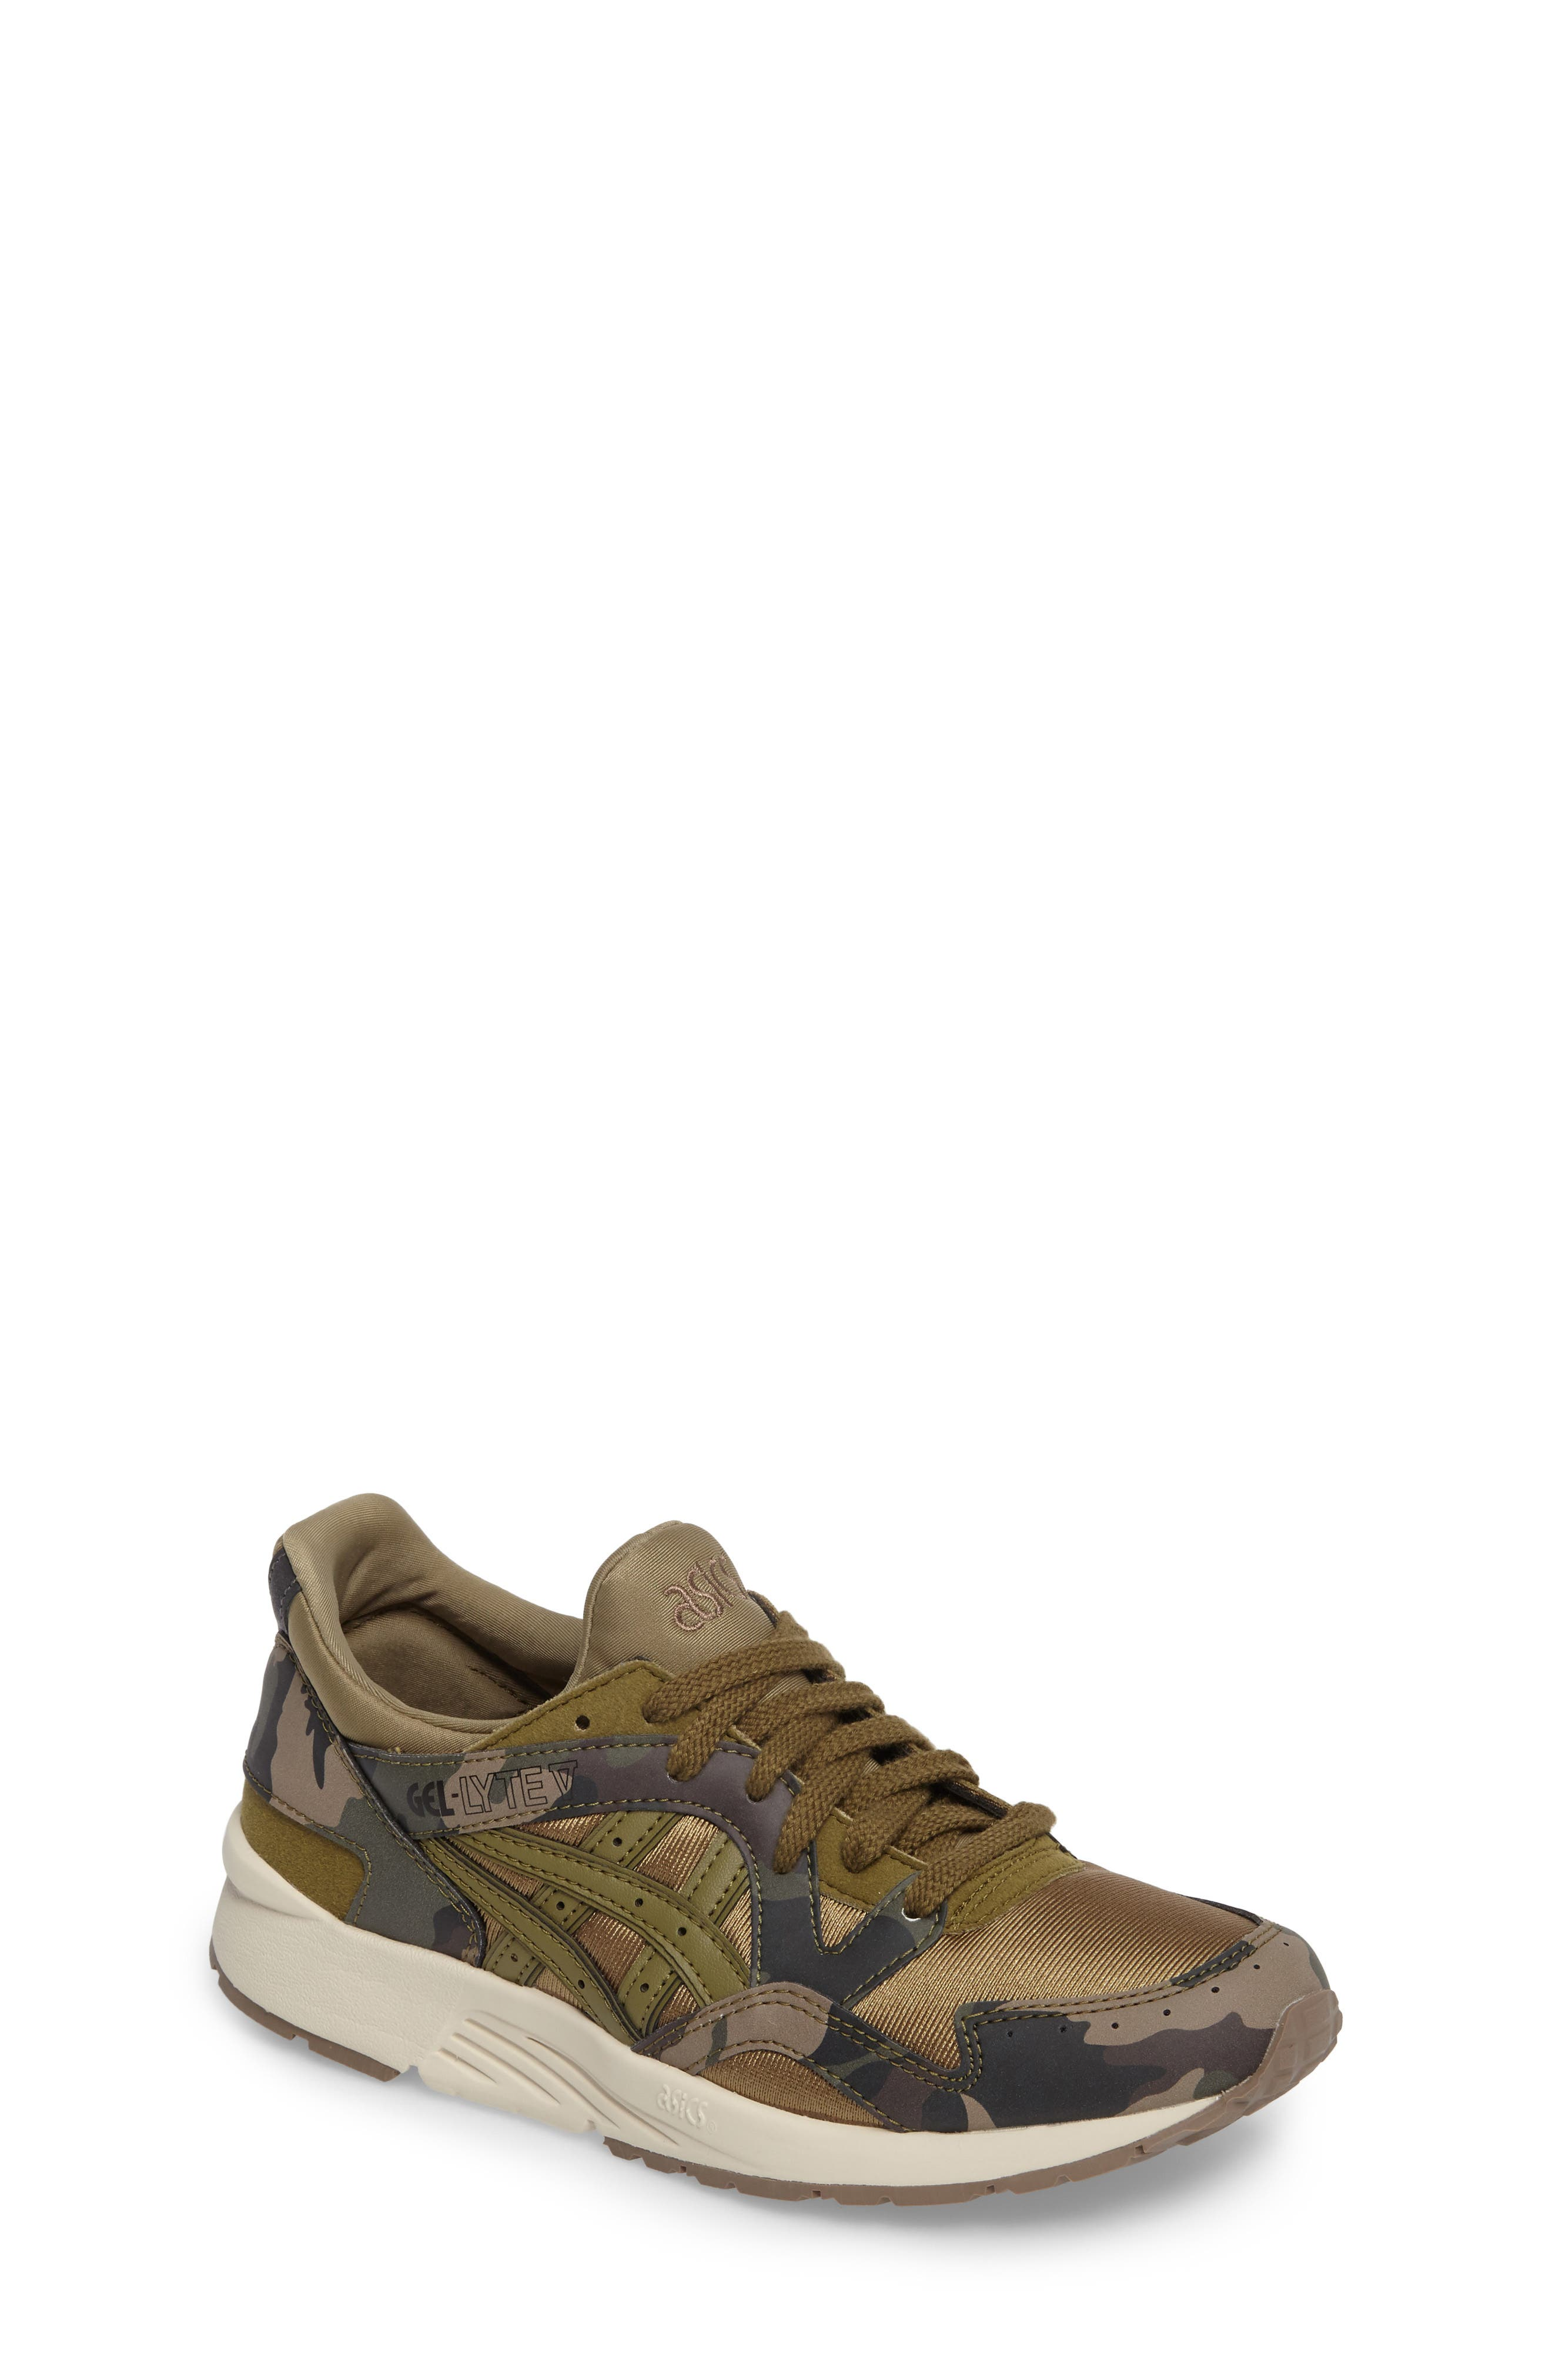 GEL-LYTE<sup>®</sup> V GS Sneaker,                             Main thumbnail 1, color,                             Martini Olive/ Martini Olive